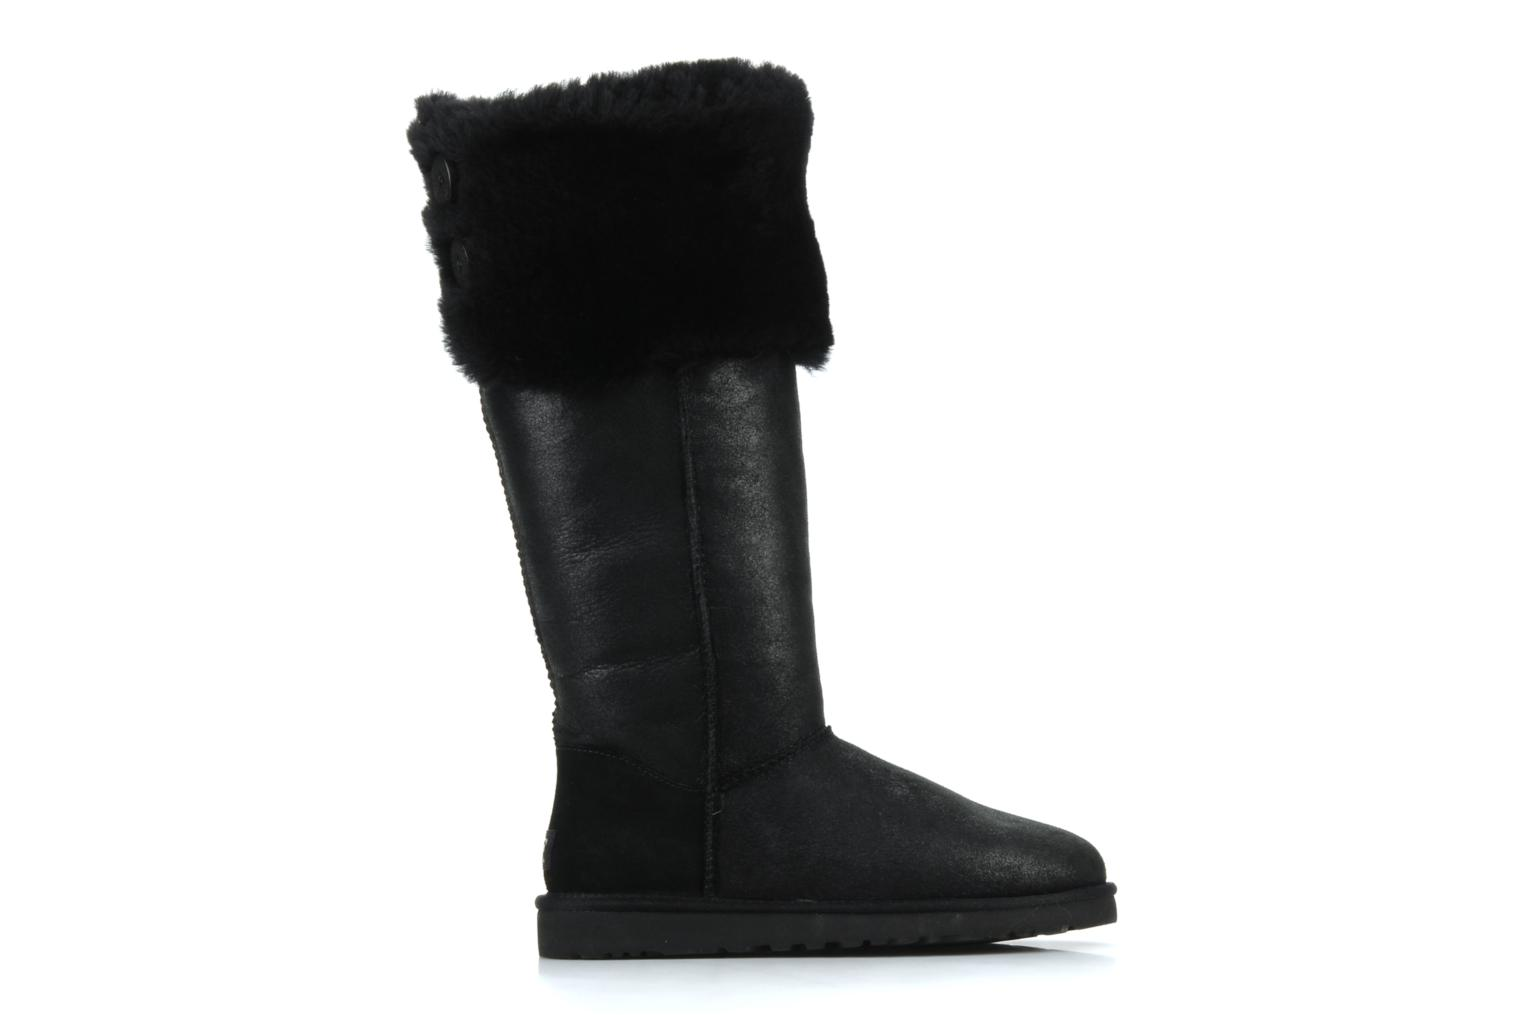 Ugg Womens Over The Knee Bailey Button Boots Bomber Jacket